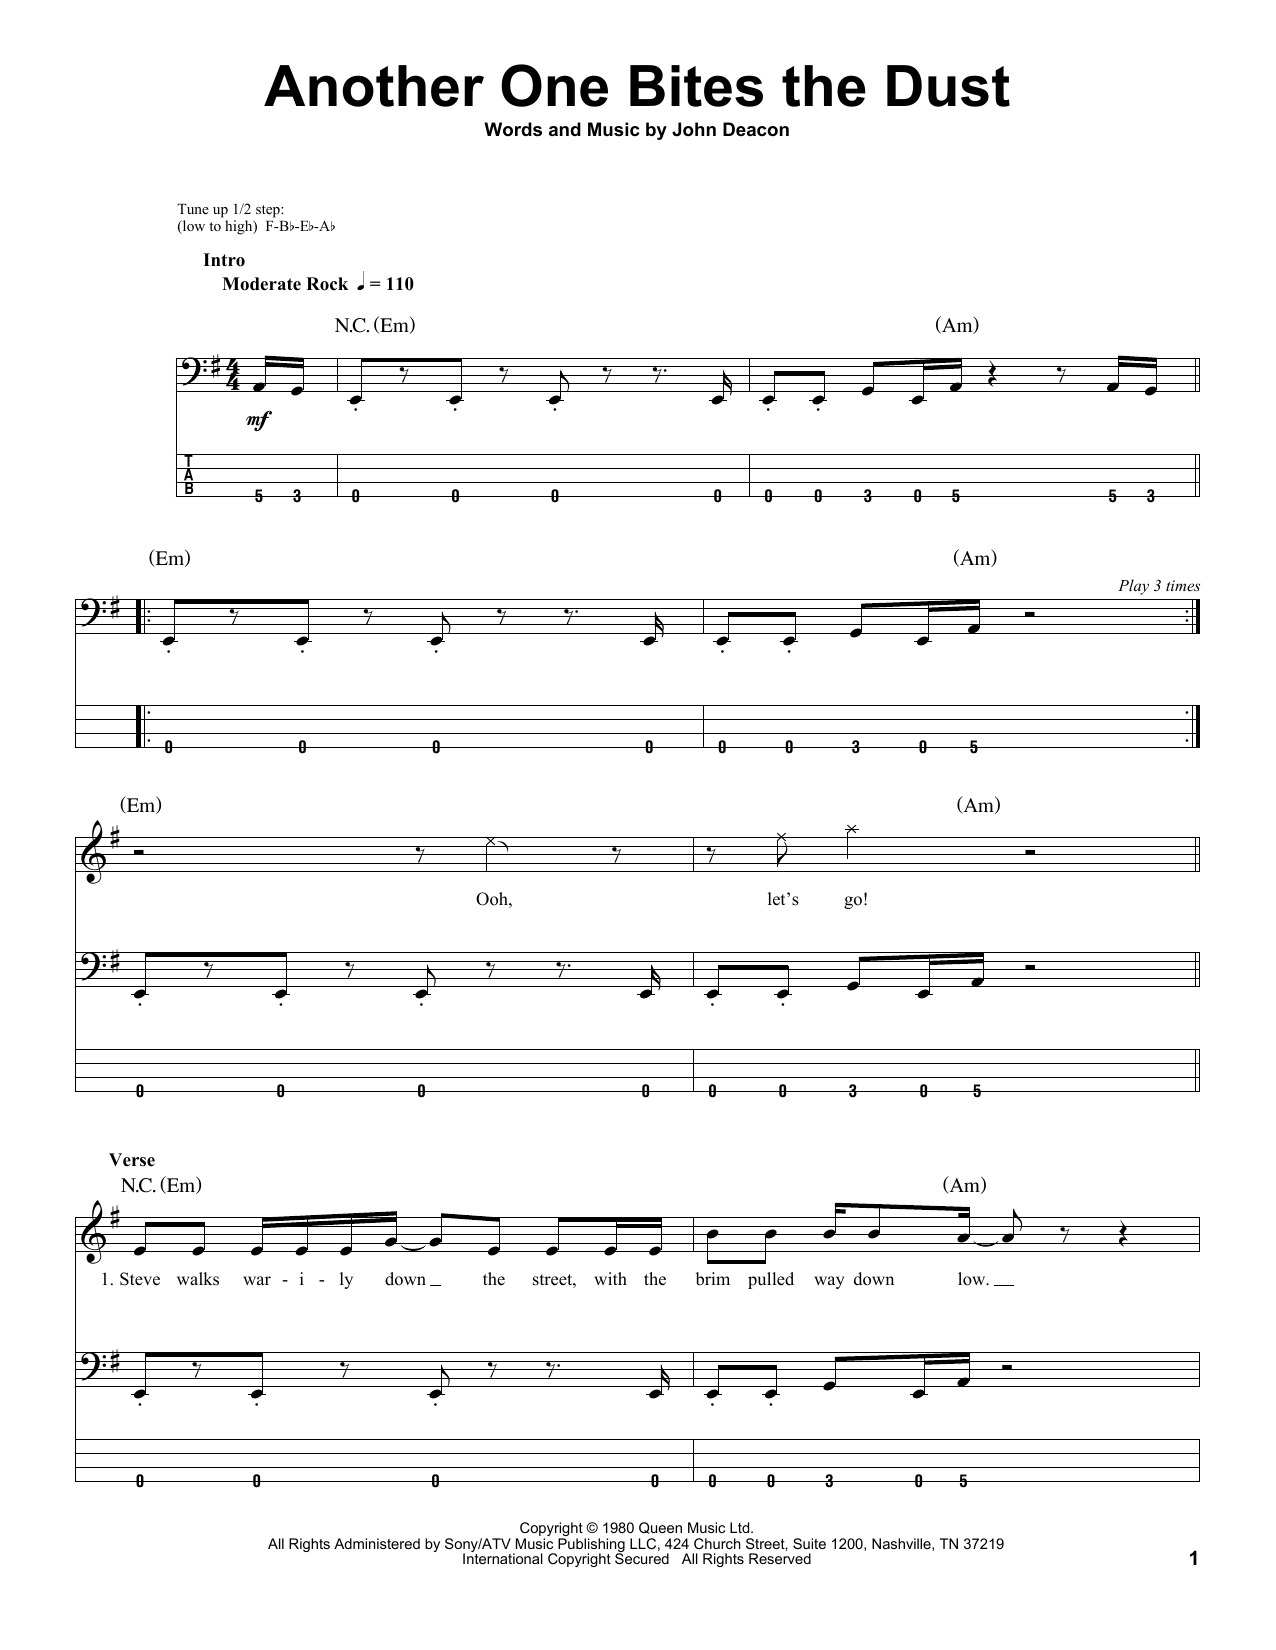 Another One Bites The Dust Bass Guitar Tab by Queen (Bass Guitar Tab u2013 51229)